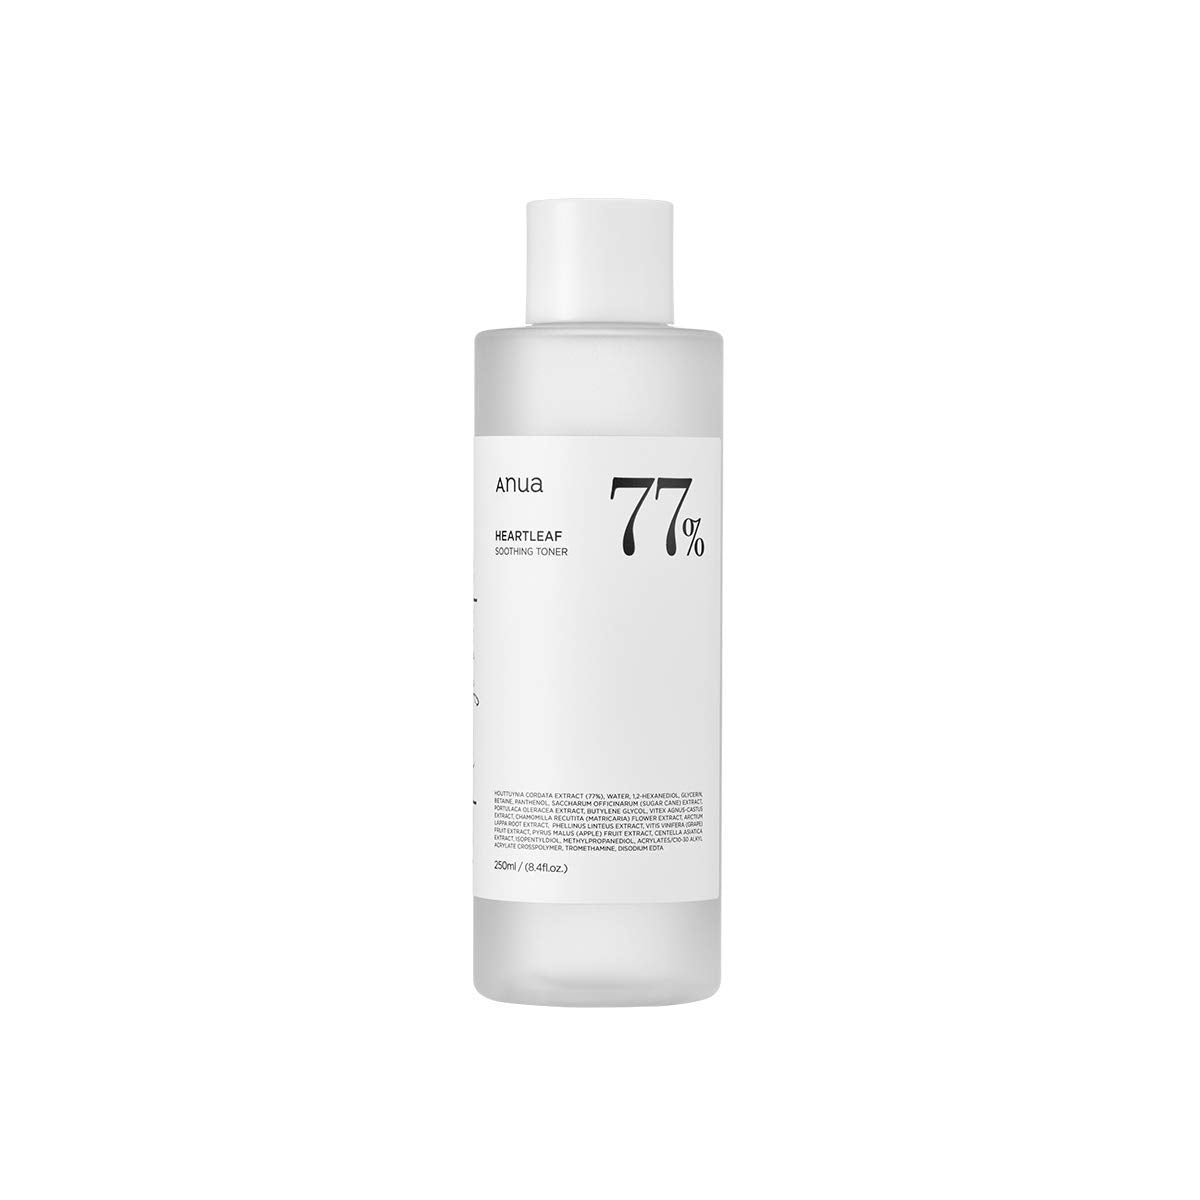 [Anua] Heartleaf 77% Soothing Toner